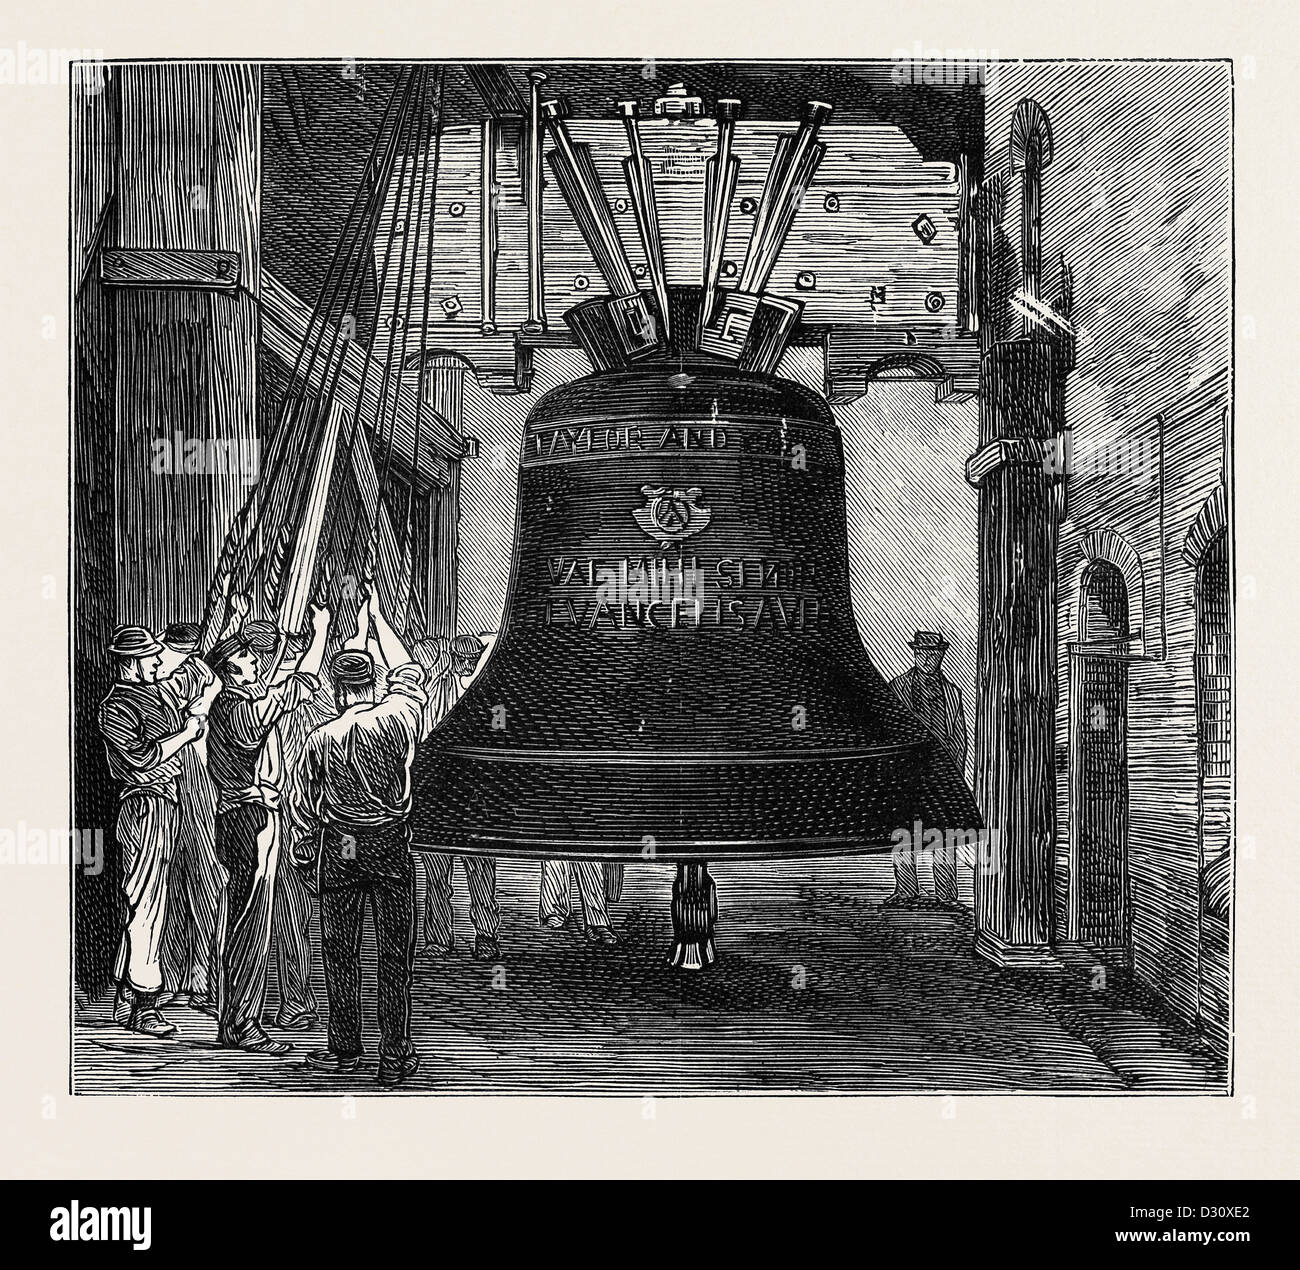 GREAT PAUL: THE NEW BELL FOR ST. PAUL'S CATHEDRAL: HUNG IN FOUNDRY FOR EXPERIMENTAL SWINGING, LONDON - Stock Image